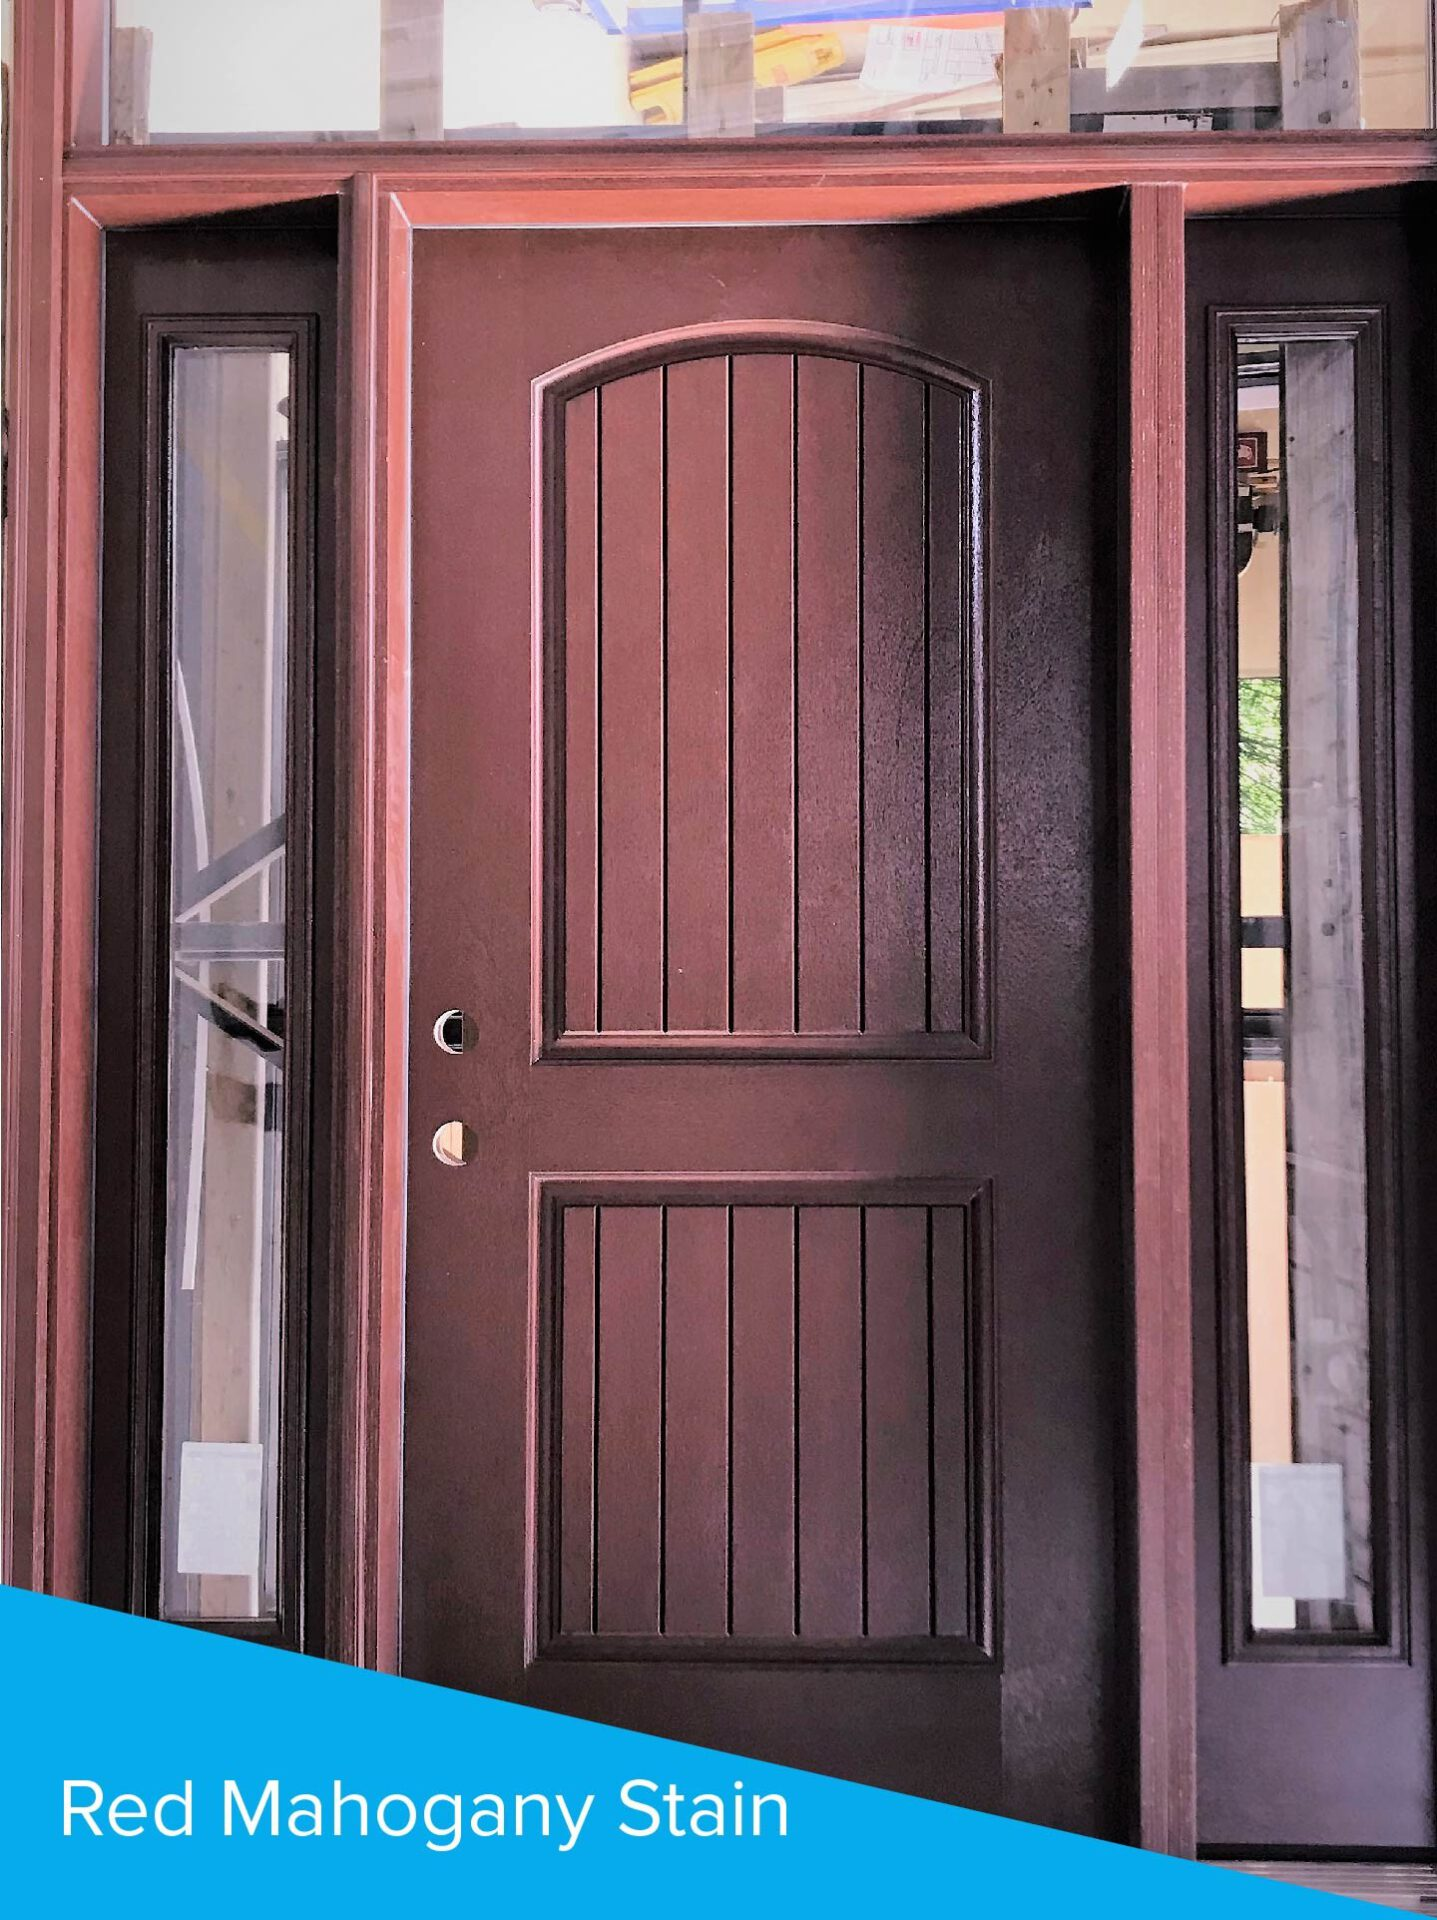 Red Mahogany stained door with sidelites